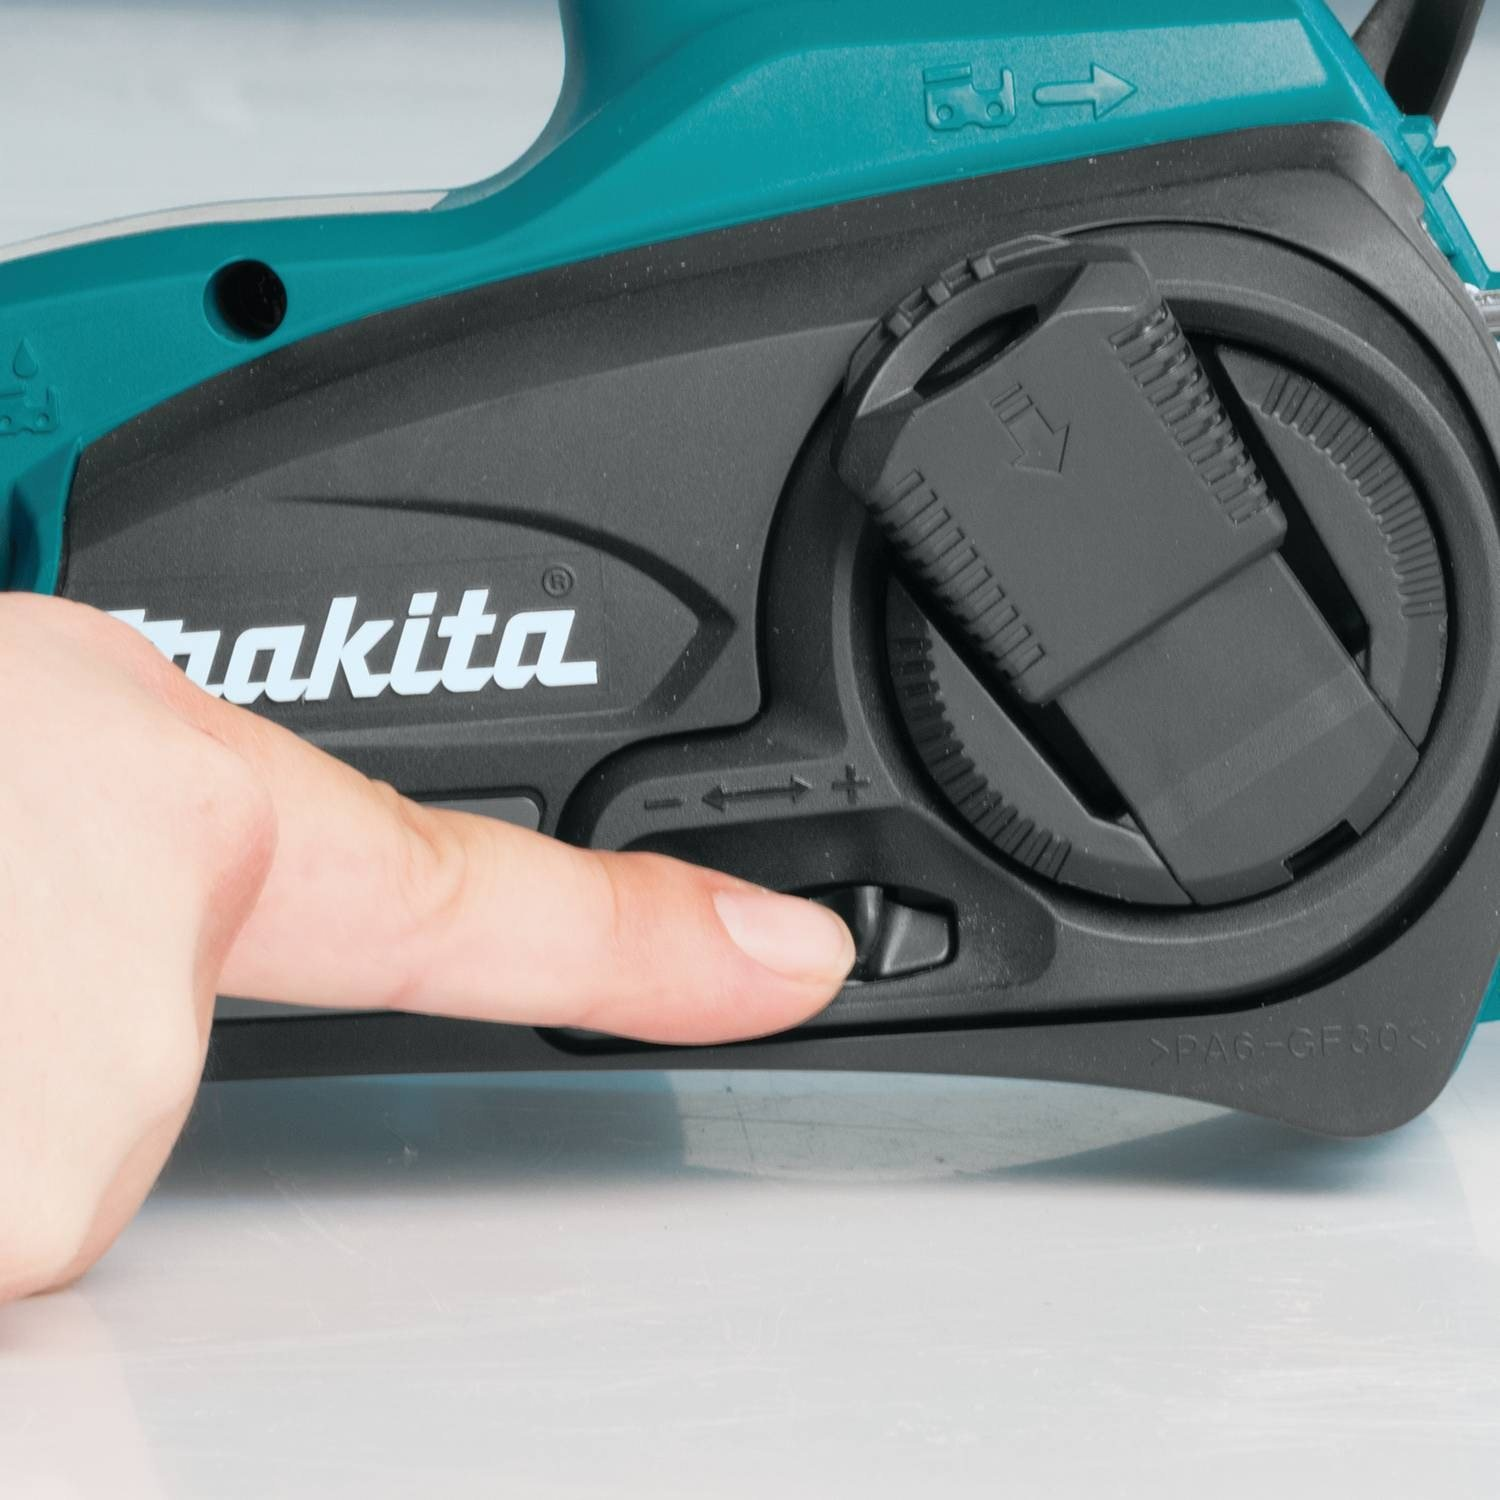 Makita XCU02PT1 Chainsaws product image 10